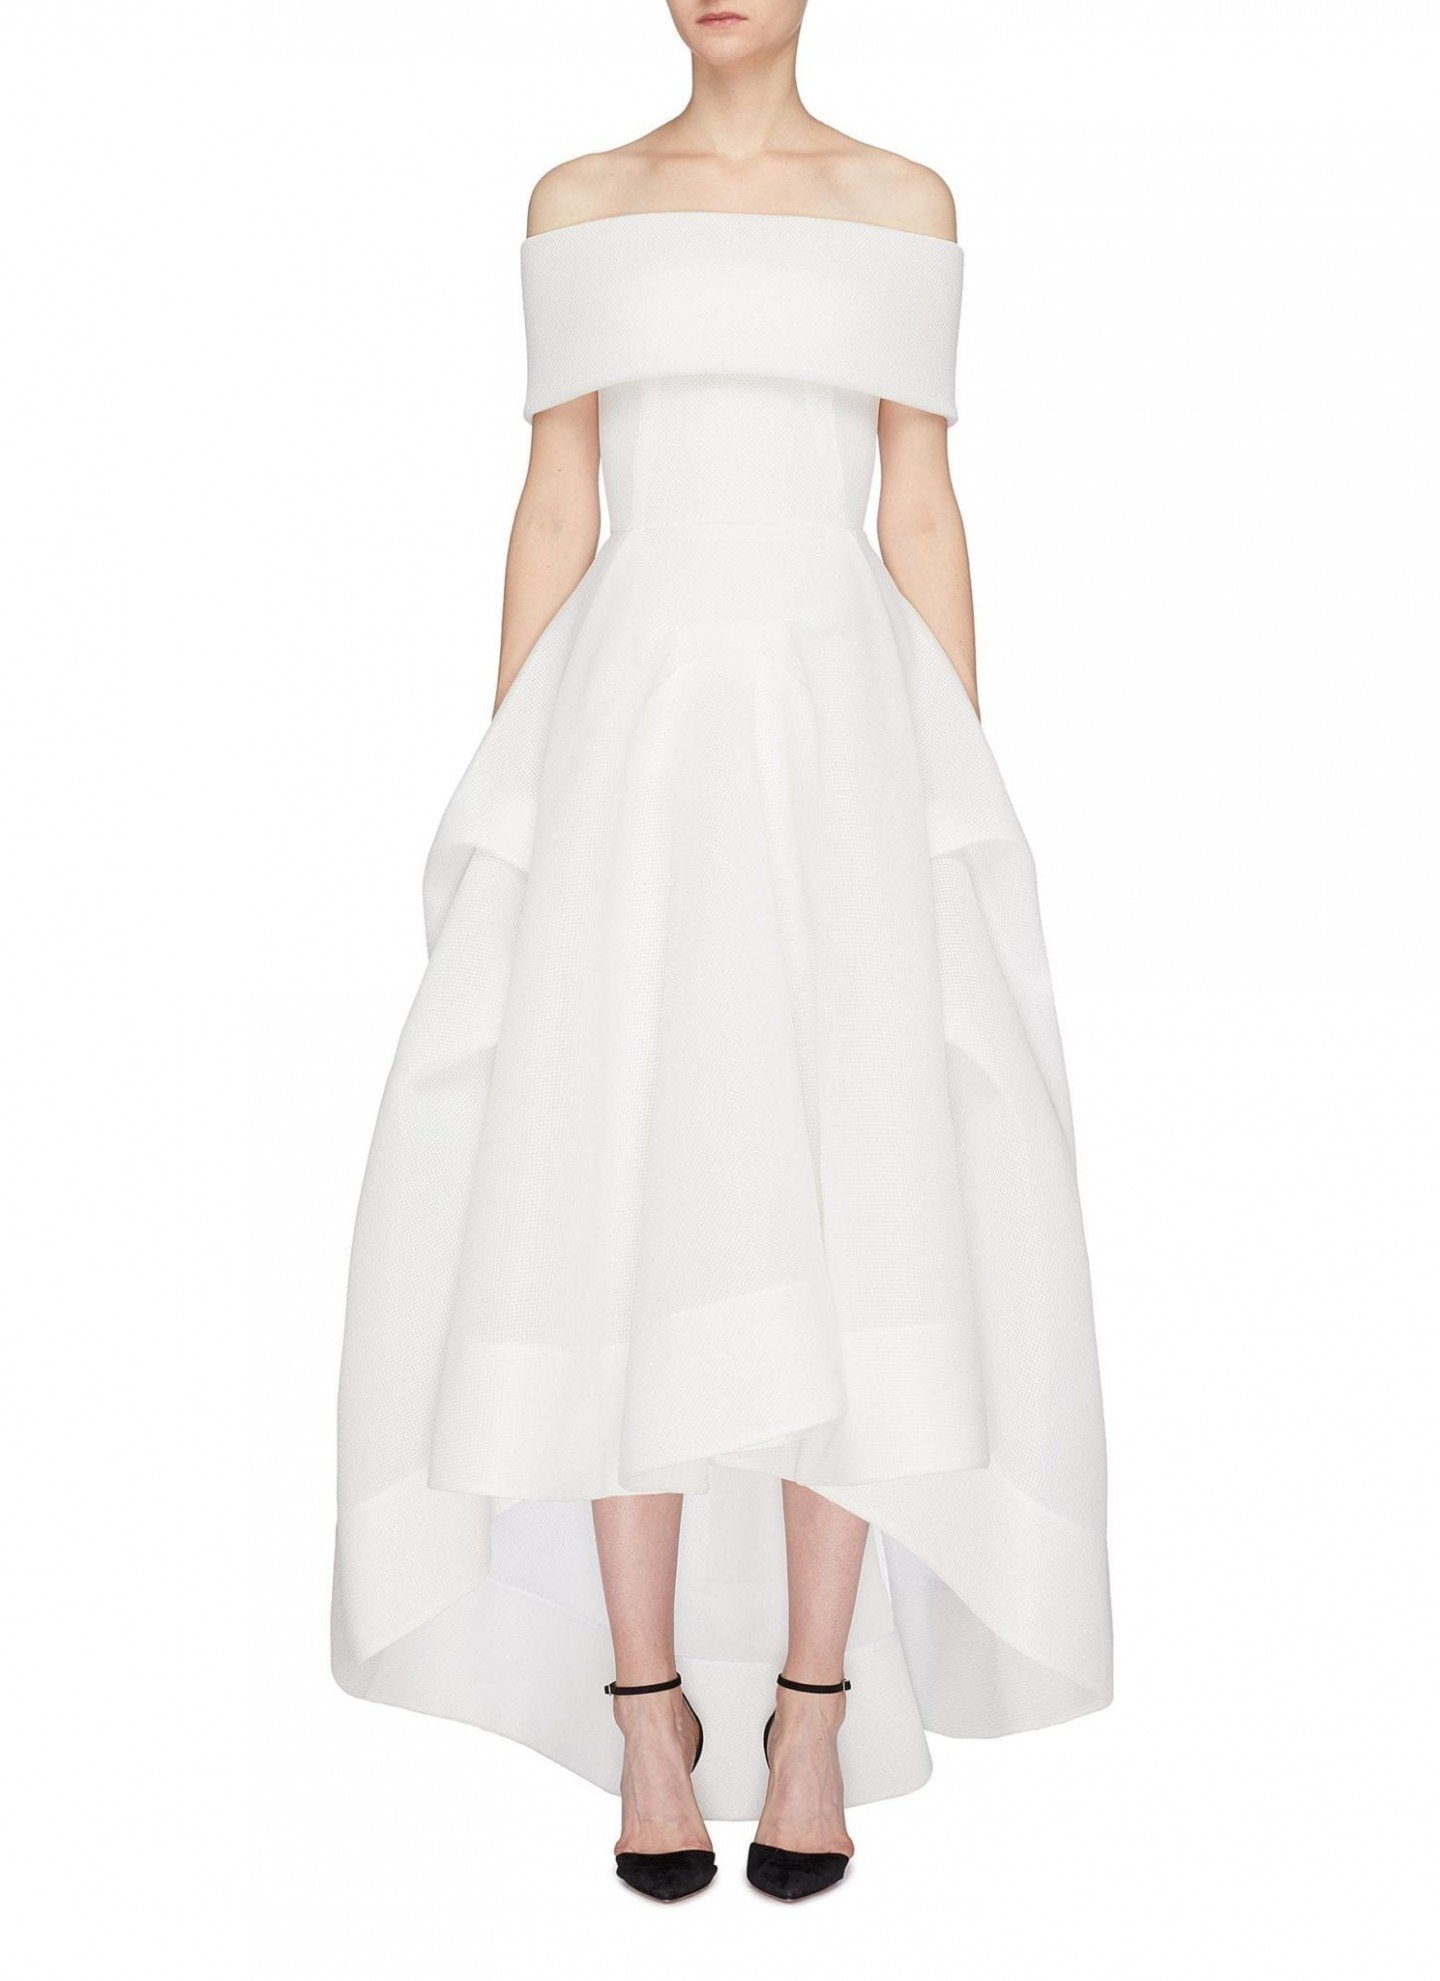 MATICEVSKI 'Thorax' Cutout Off-Shoulder High-Low White Gown